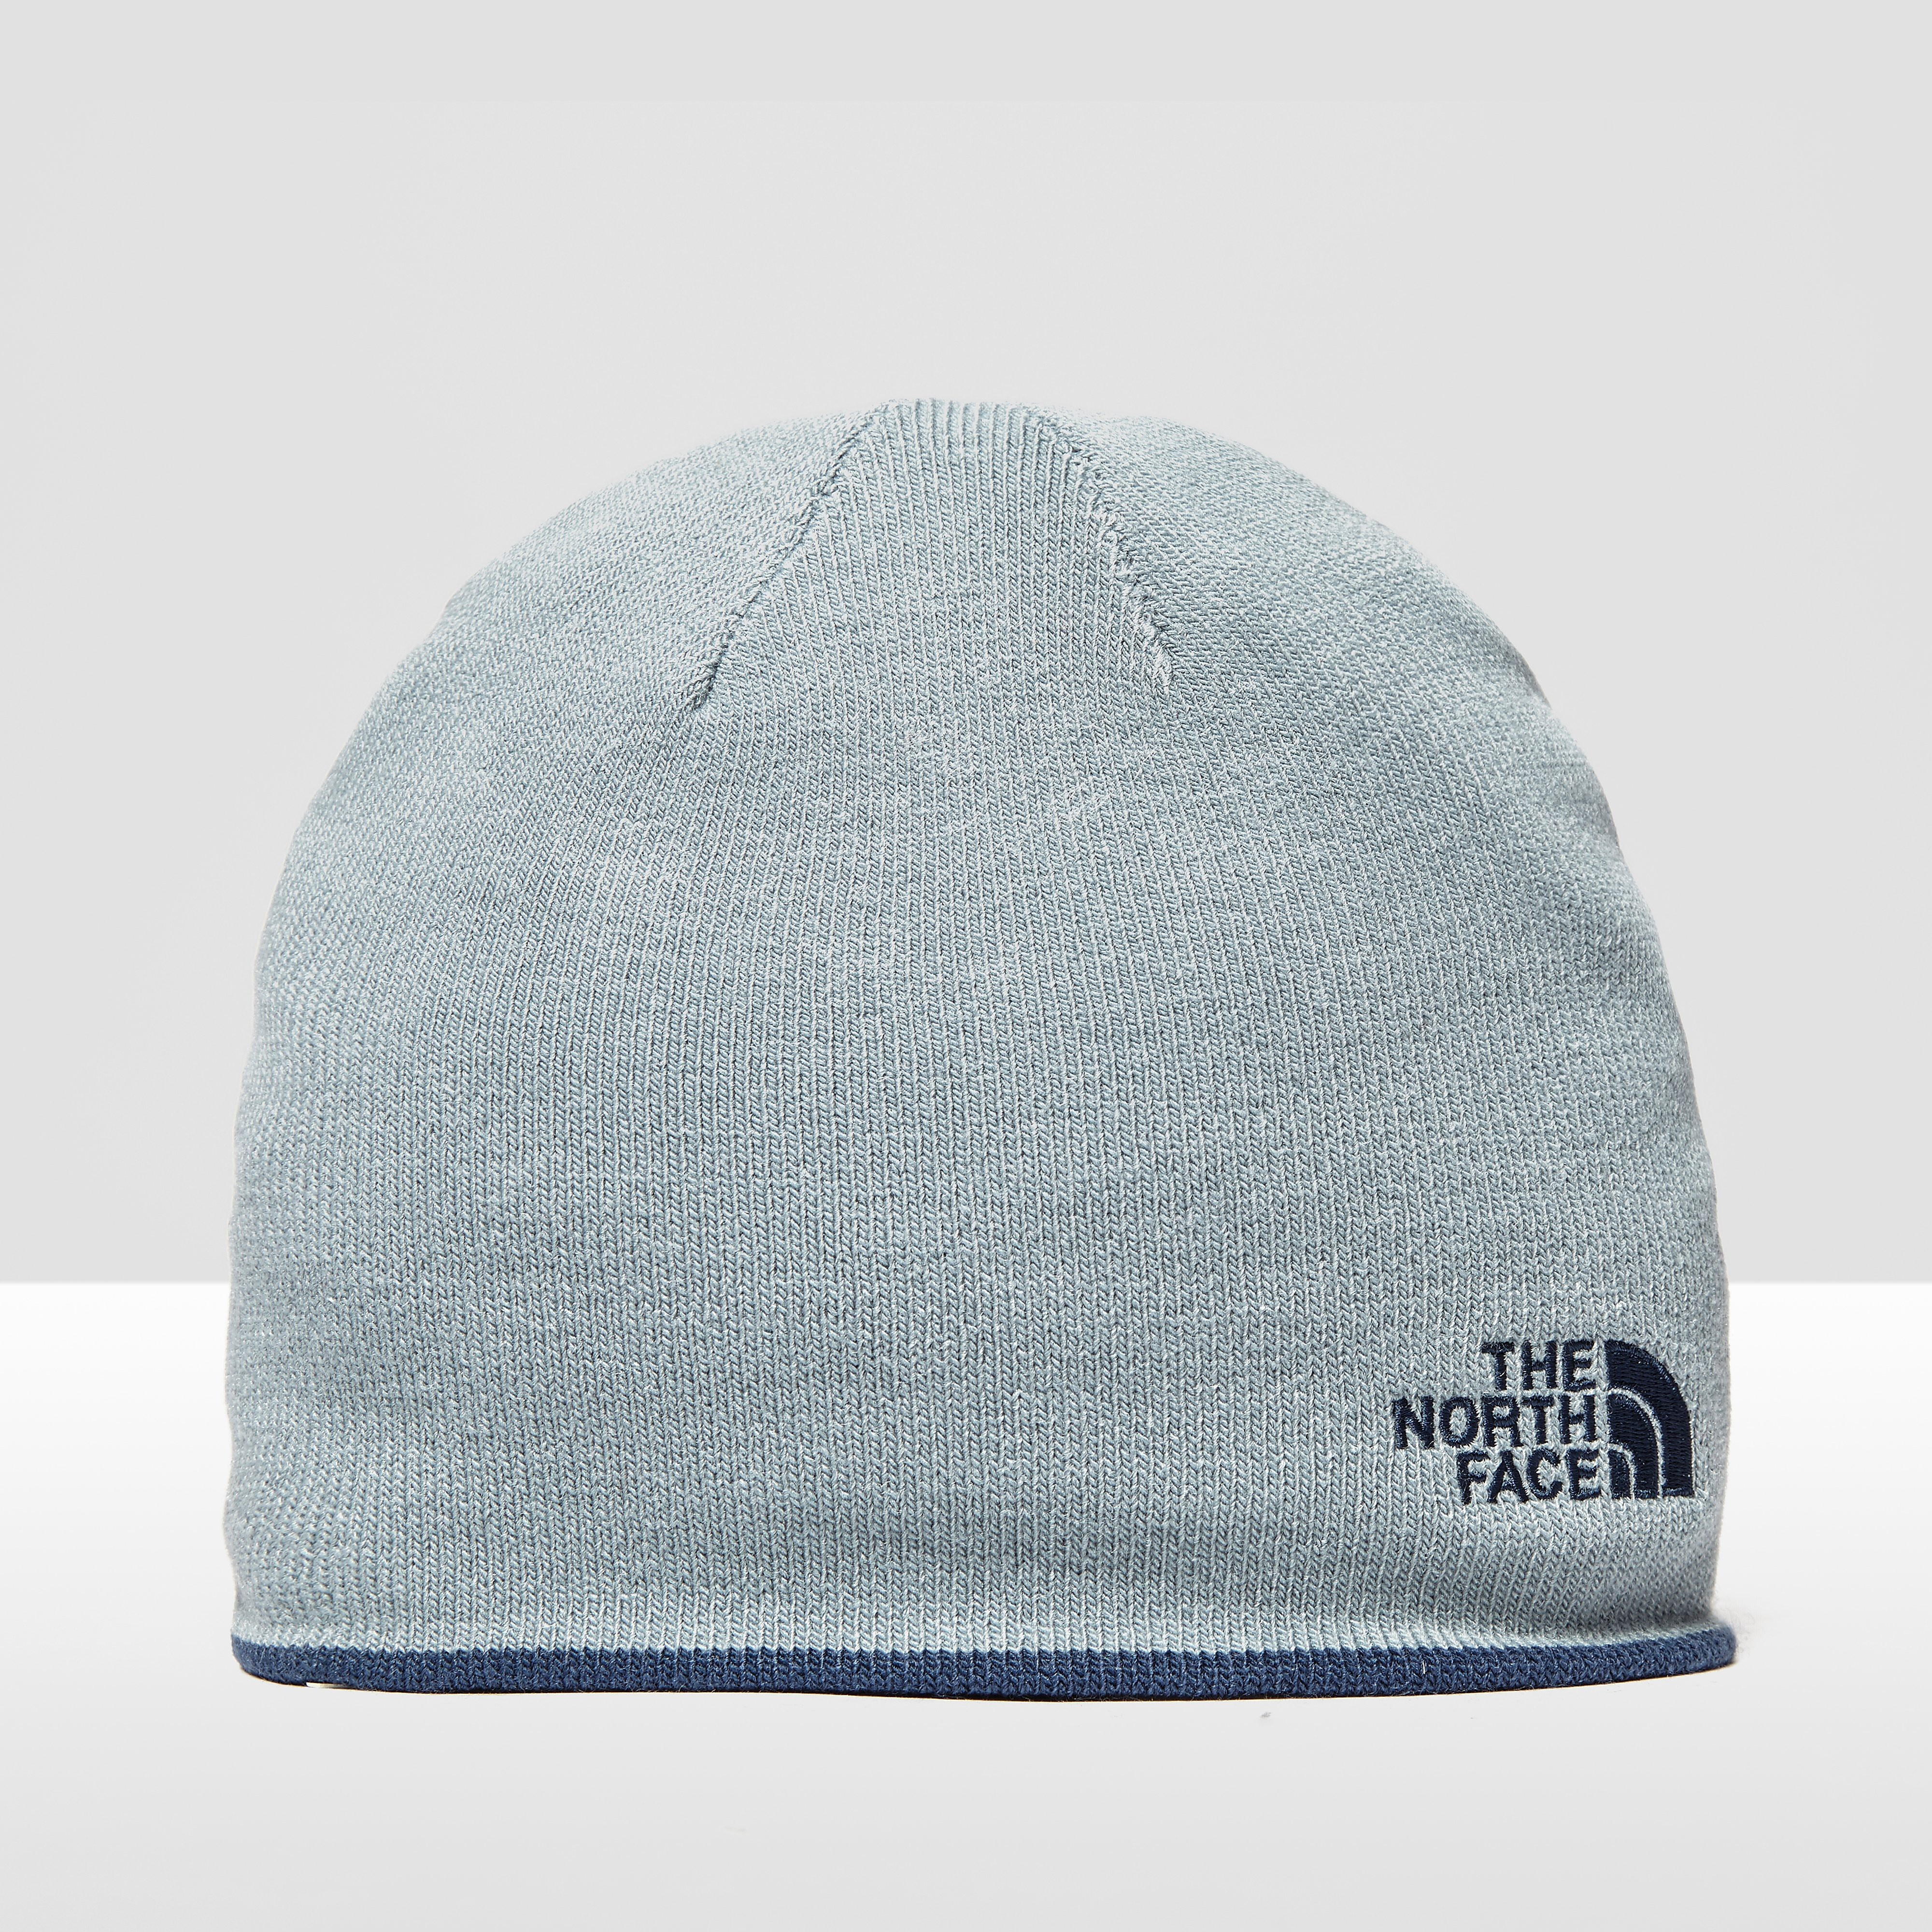 The North Face Men's Reversible Knitted Beanie